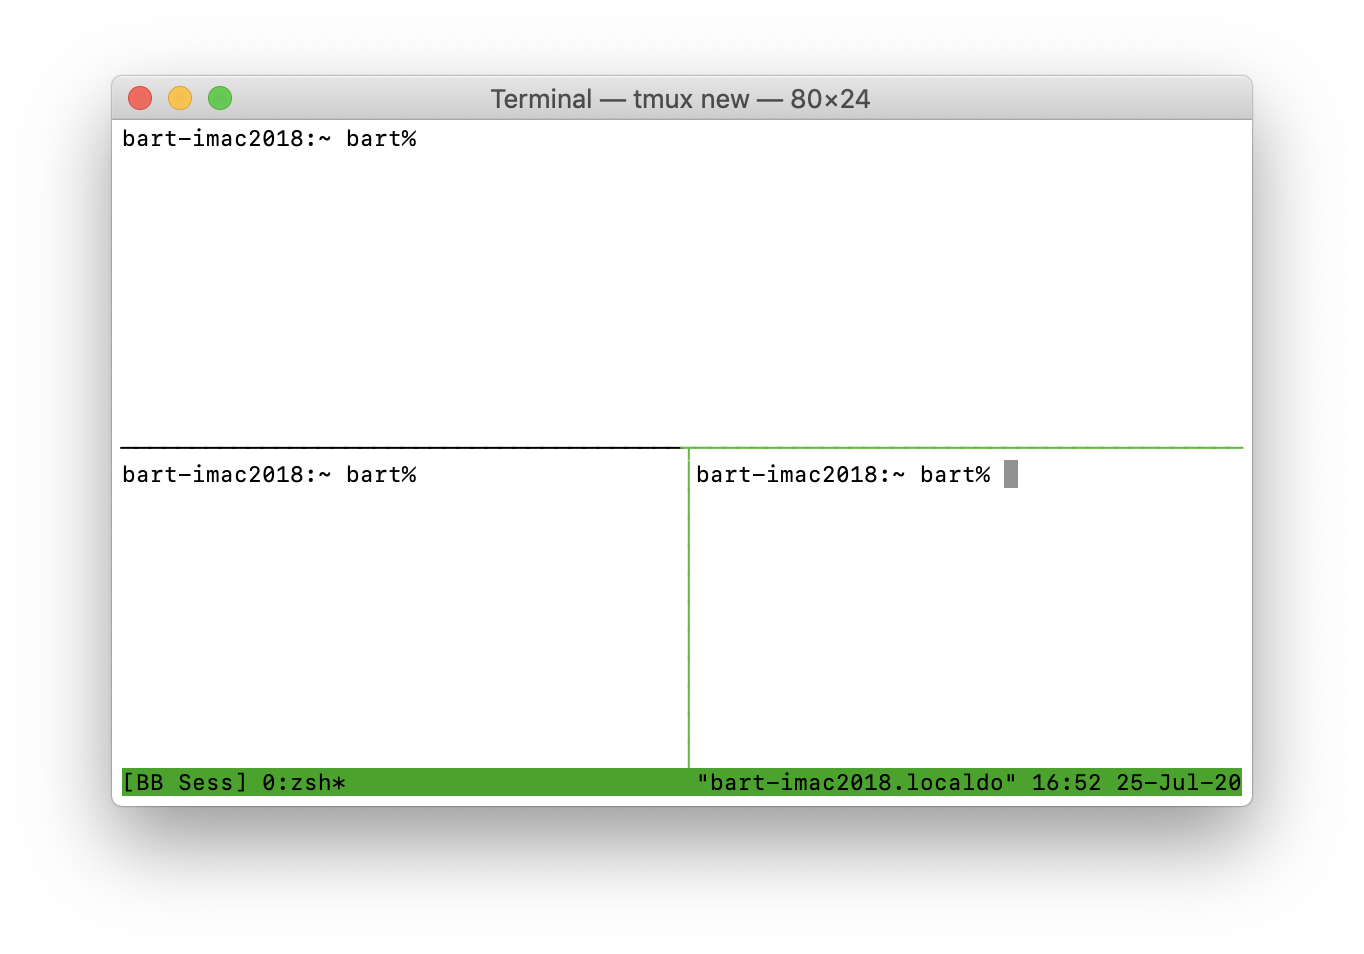 Screenshot showing 3-pane TMUX window